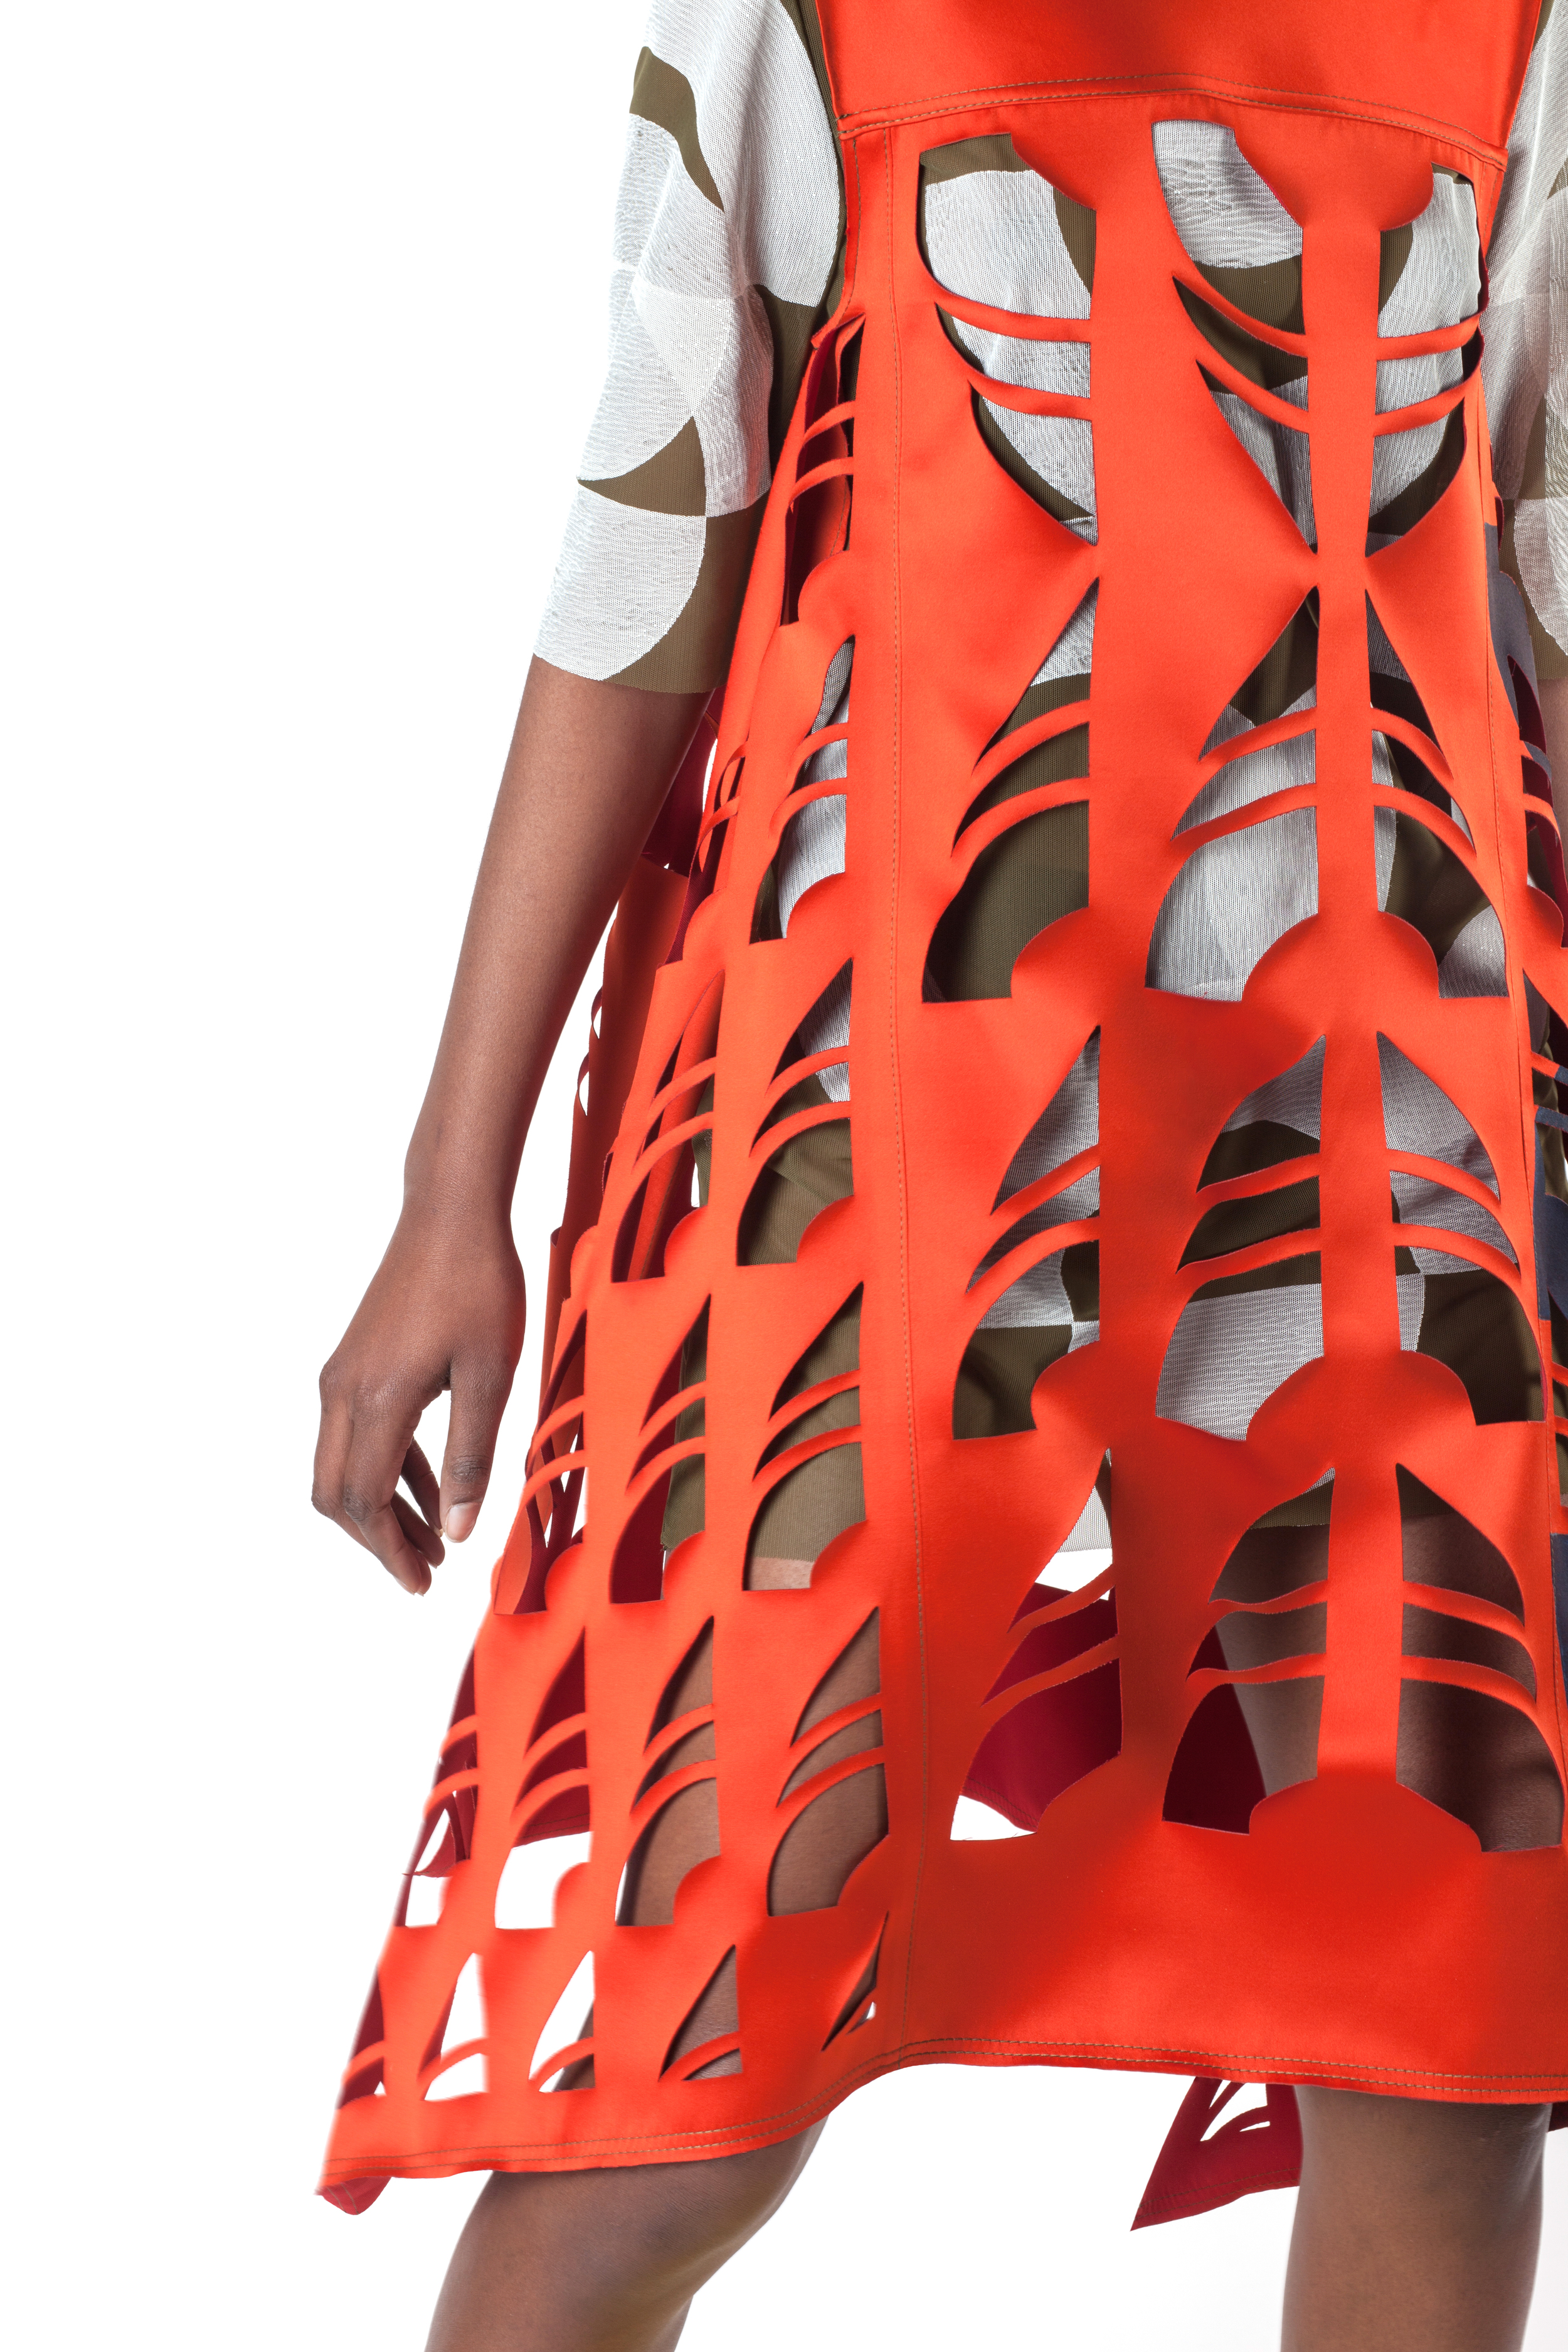 Block Printed Mesh Tee Dress under a Block Printed Laser Cut Double Faced Poly Satin Dress